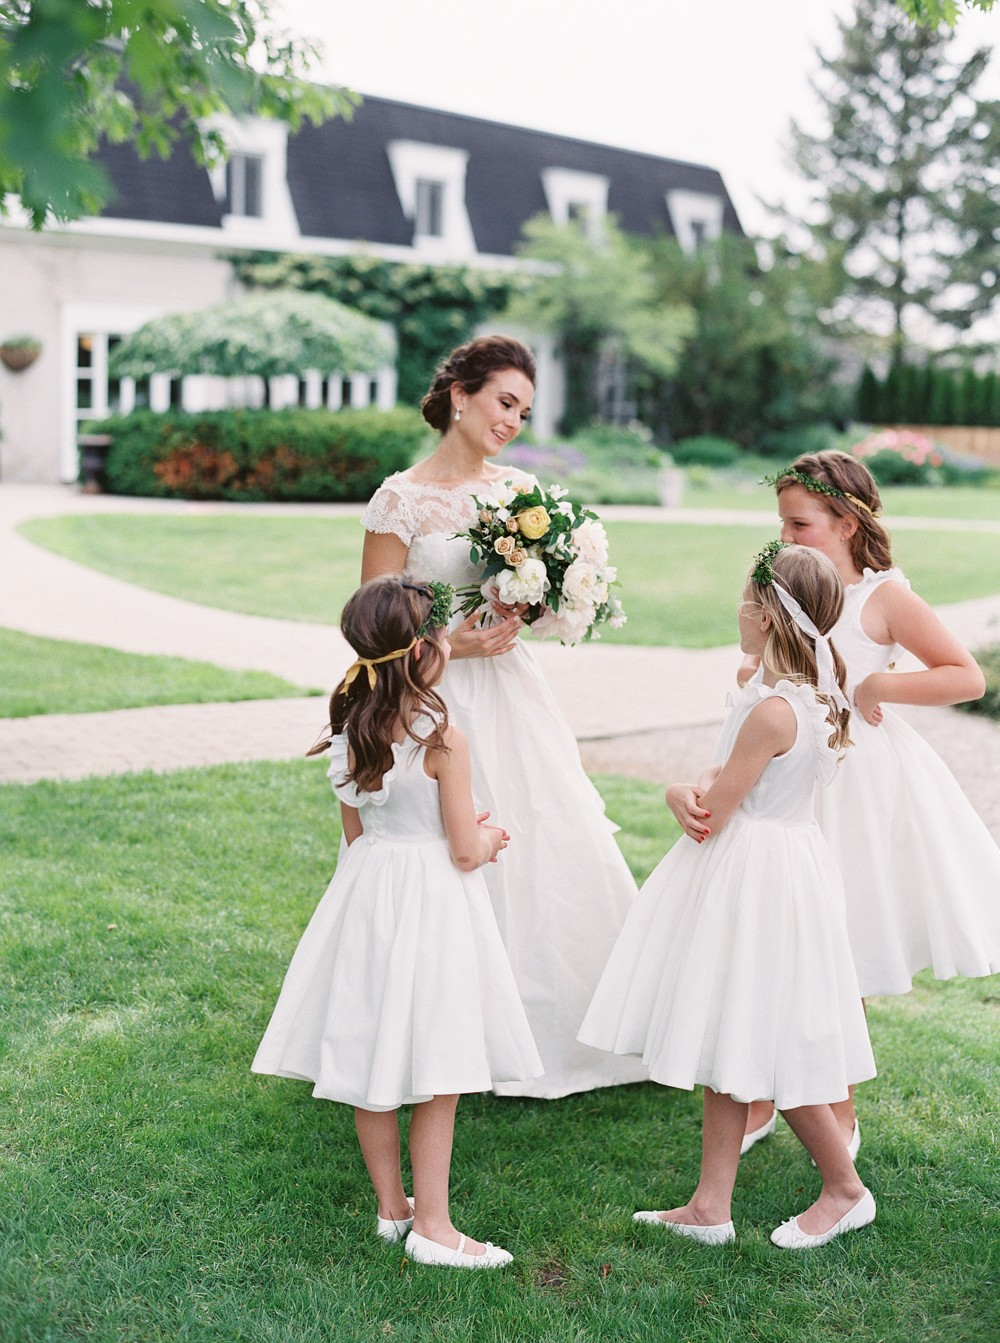 Flower girls   Sophisticated Real Wedding in Ontario by When He Found Her on Wedding Sparrow